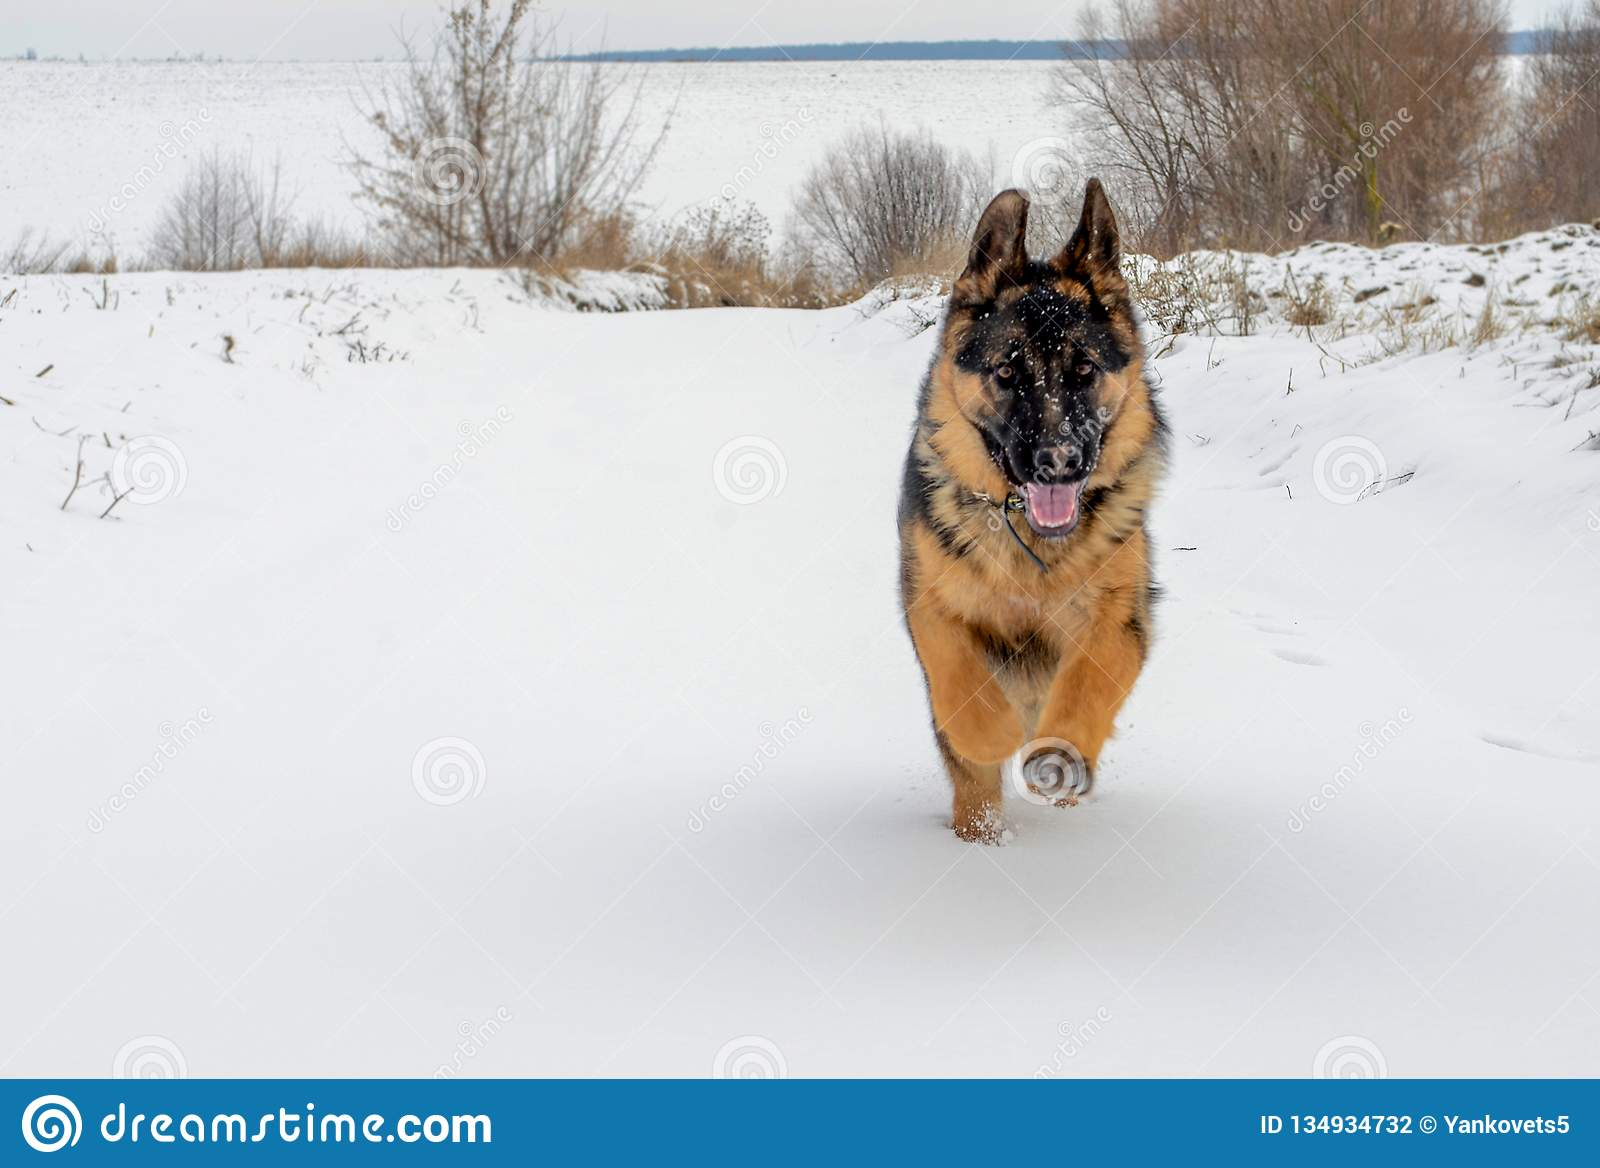 The big dog quickly runs on white snow